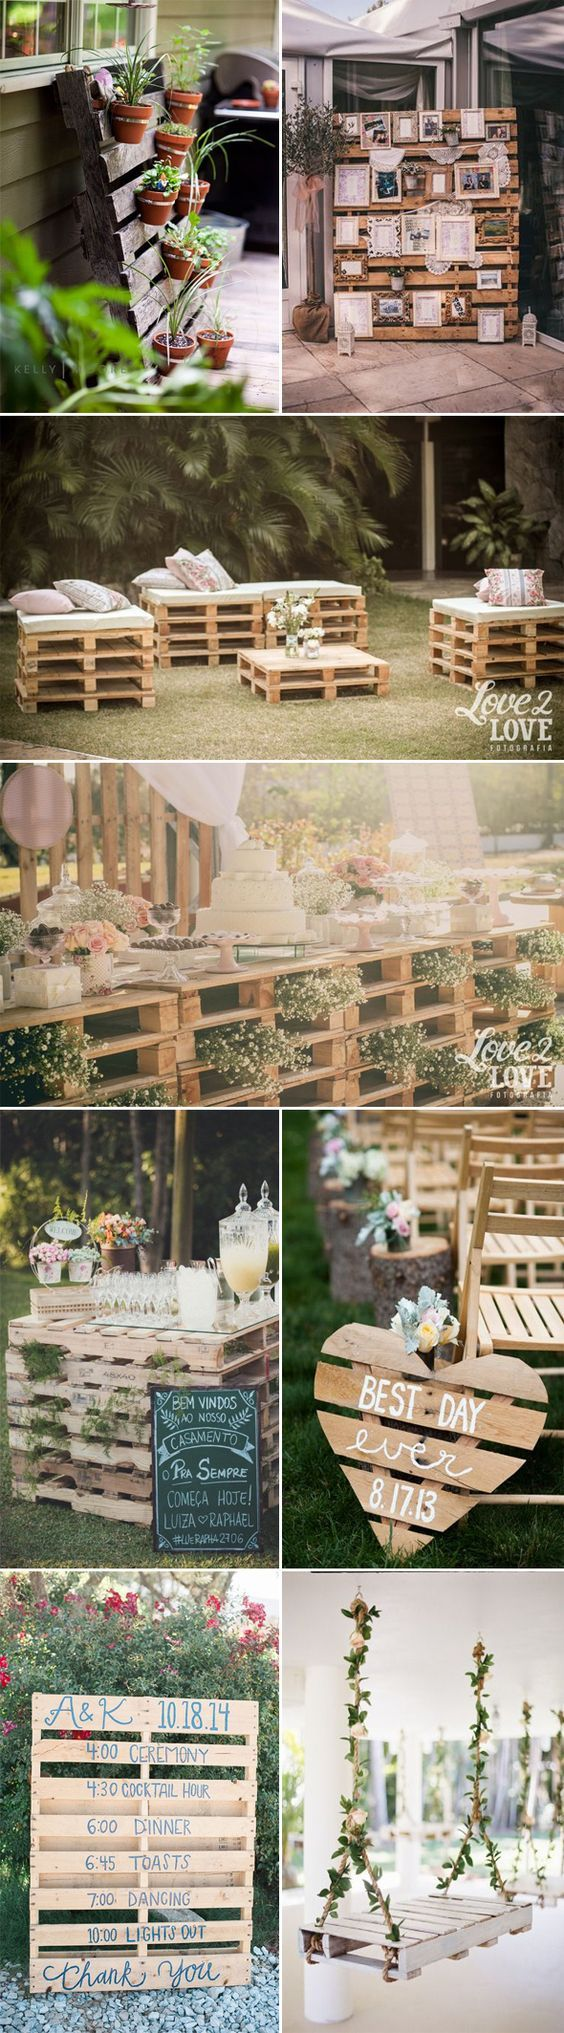 Wood wedding decoration ideas   best Déco images on Pinterest  Home ideas Bedroom ideas and